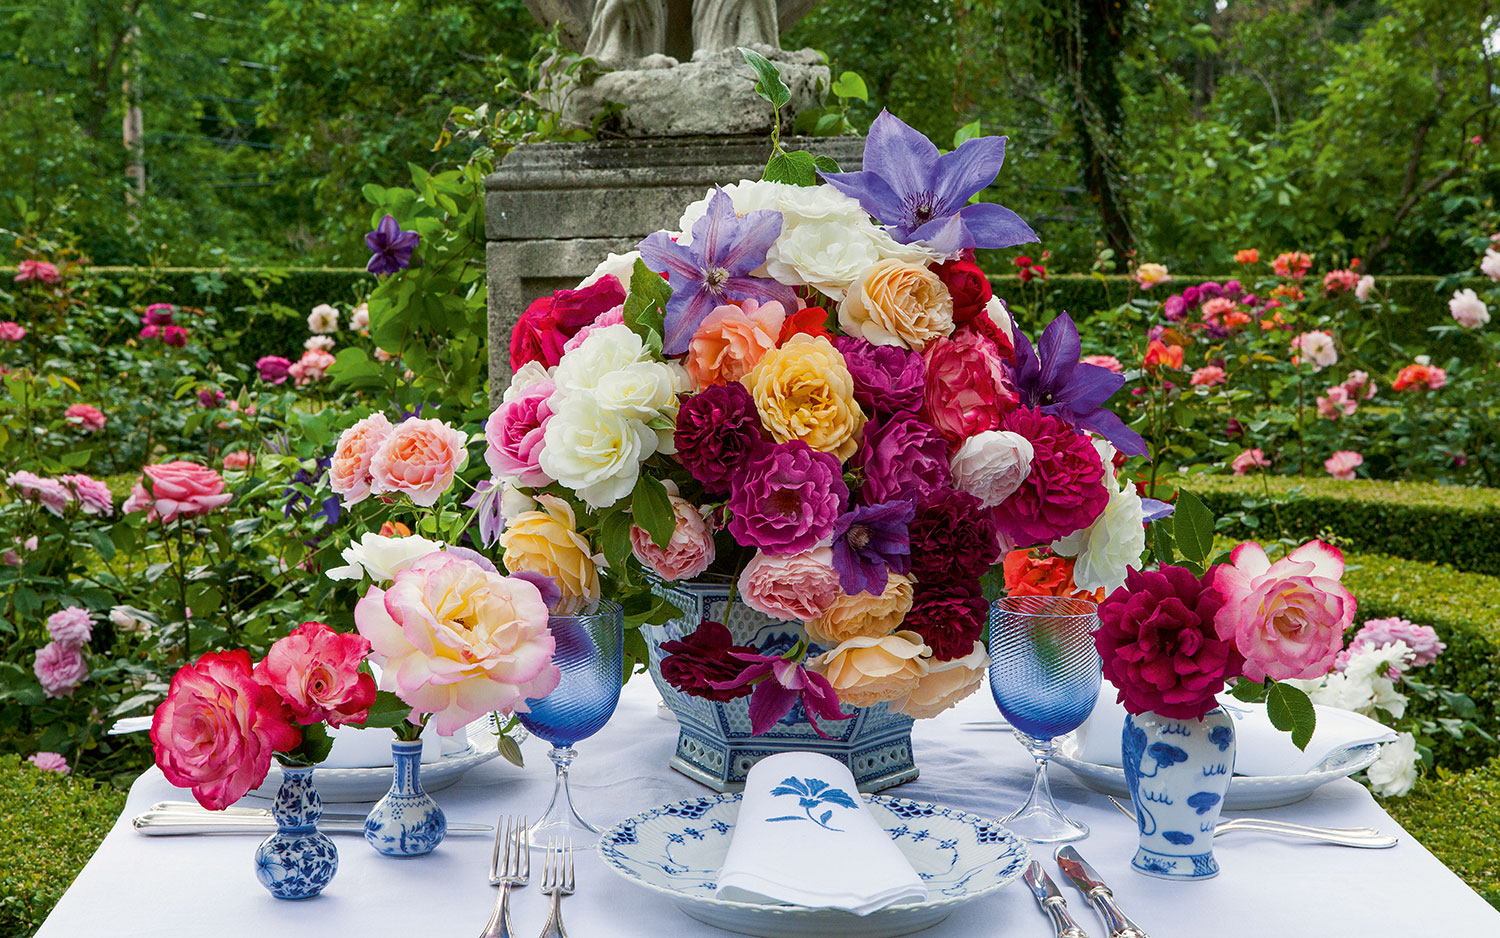 A photo of a table setting in Carolyne Roehm's garden.